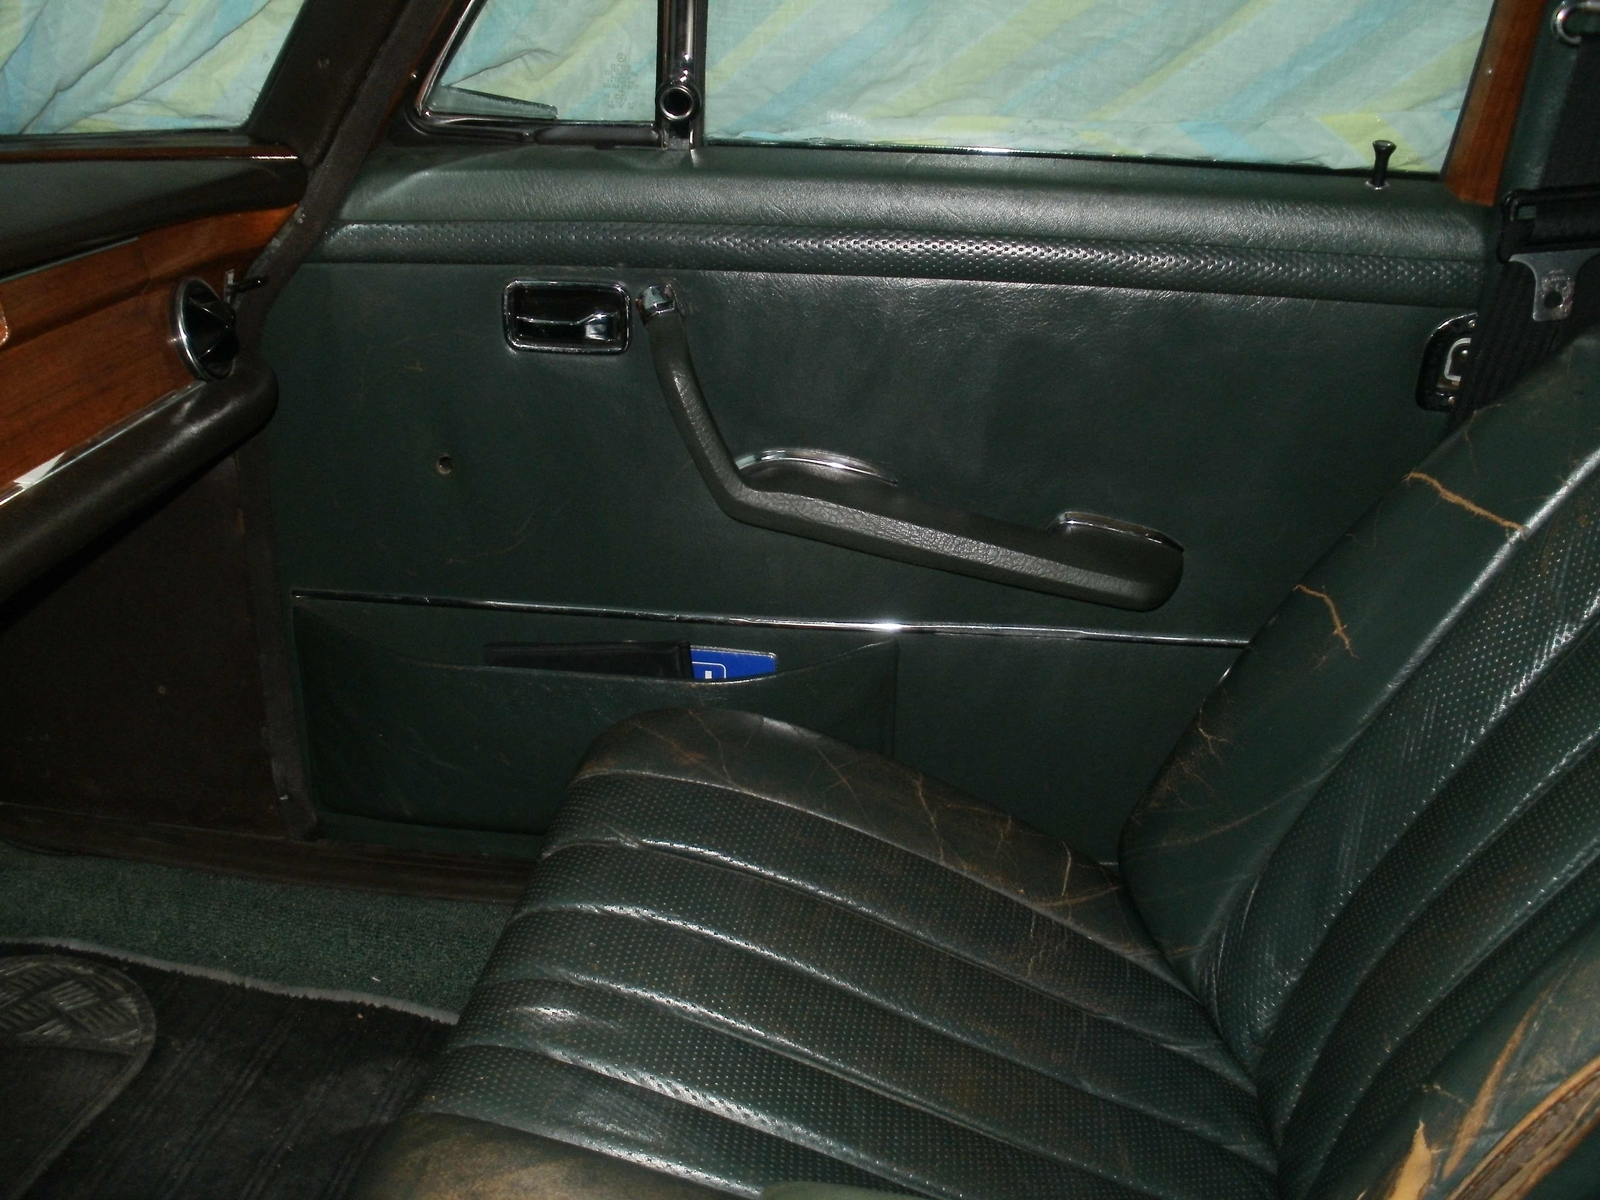 MB W108 Neuerstellung Interieur - finest care